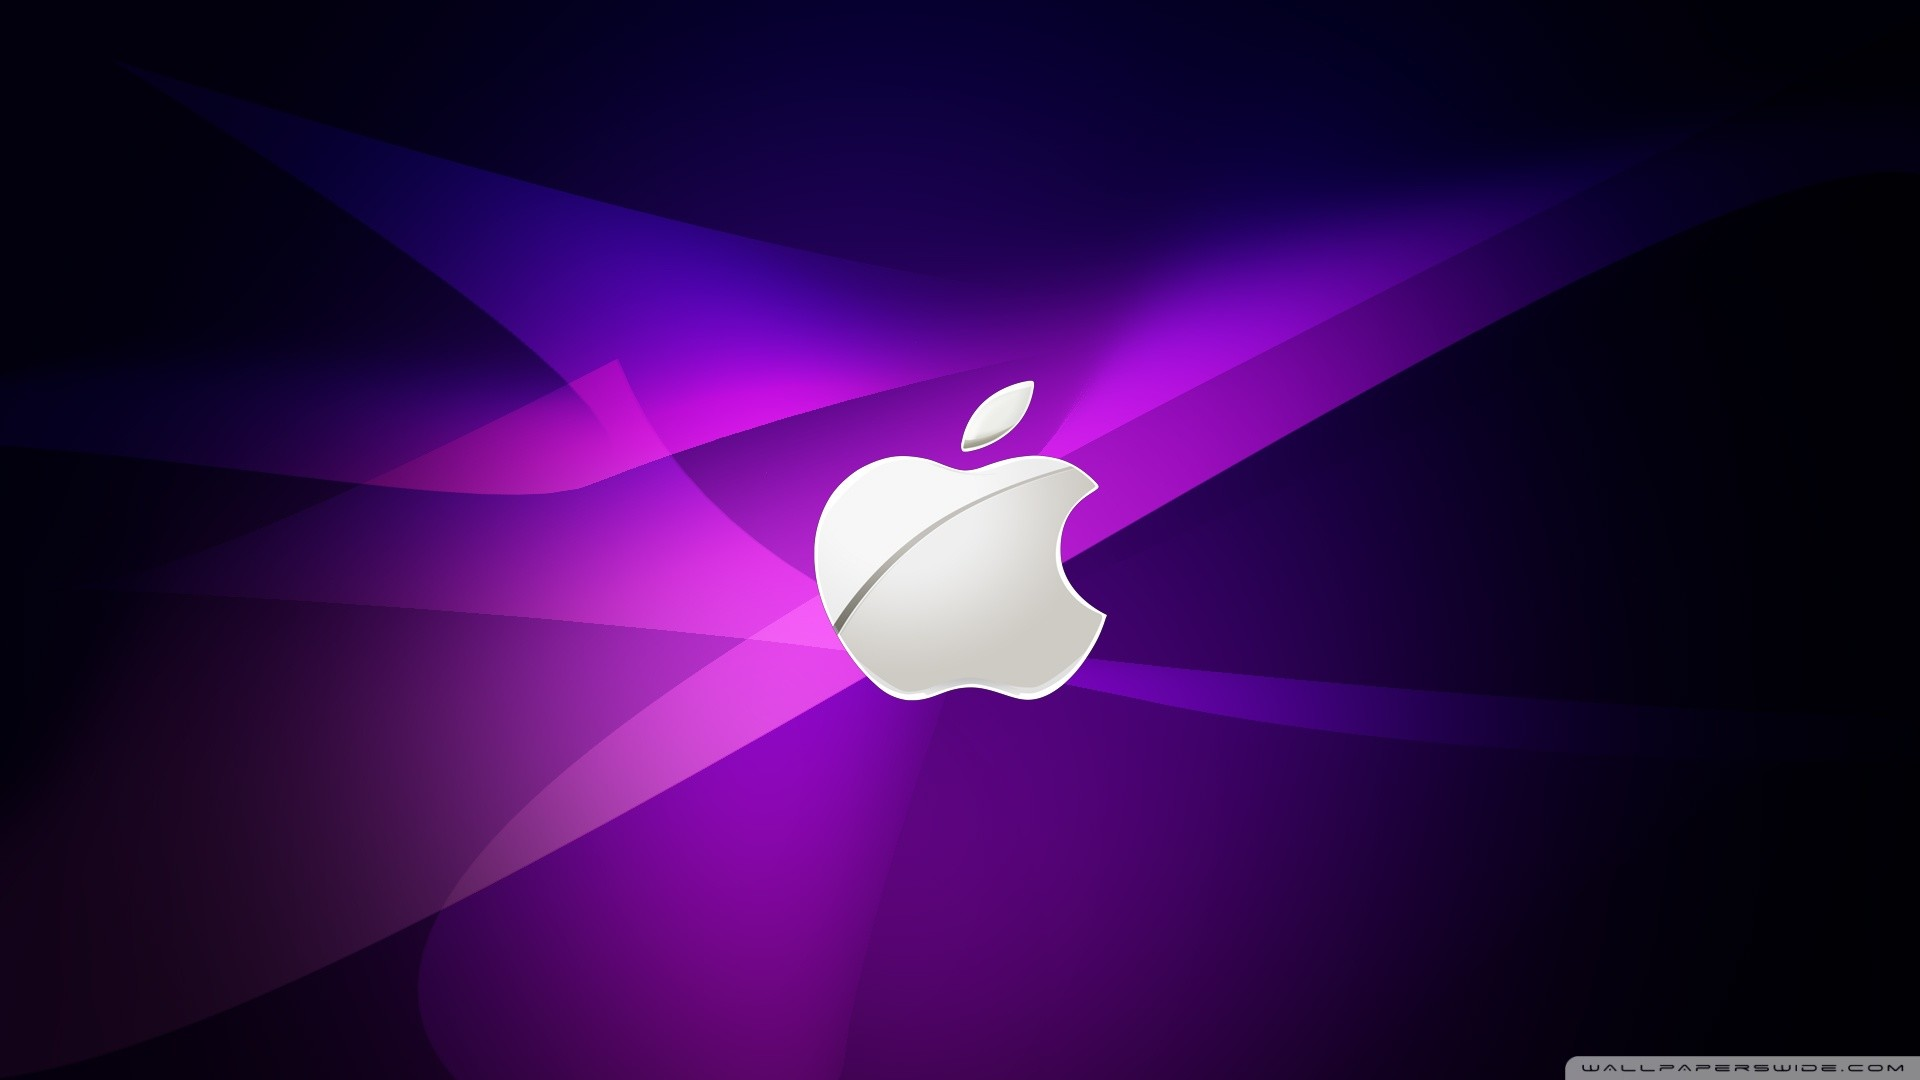 Hd Apple Wallpapers 1080p 70 Images